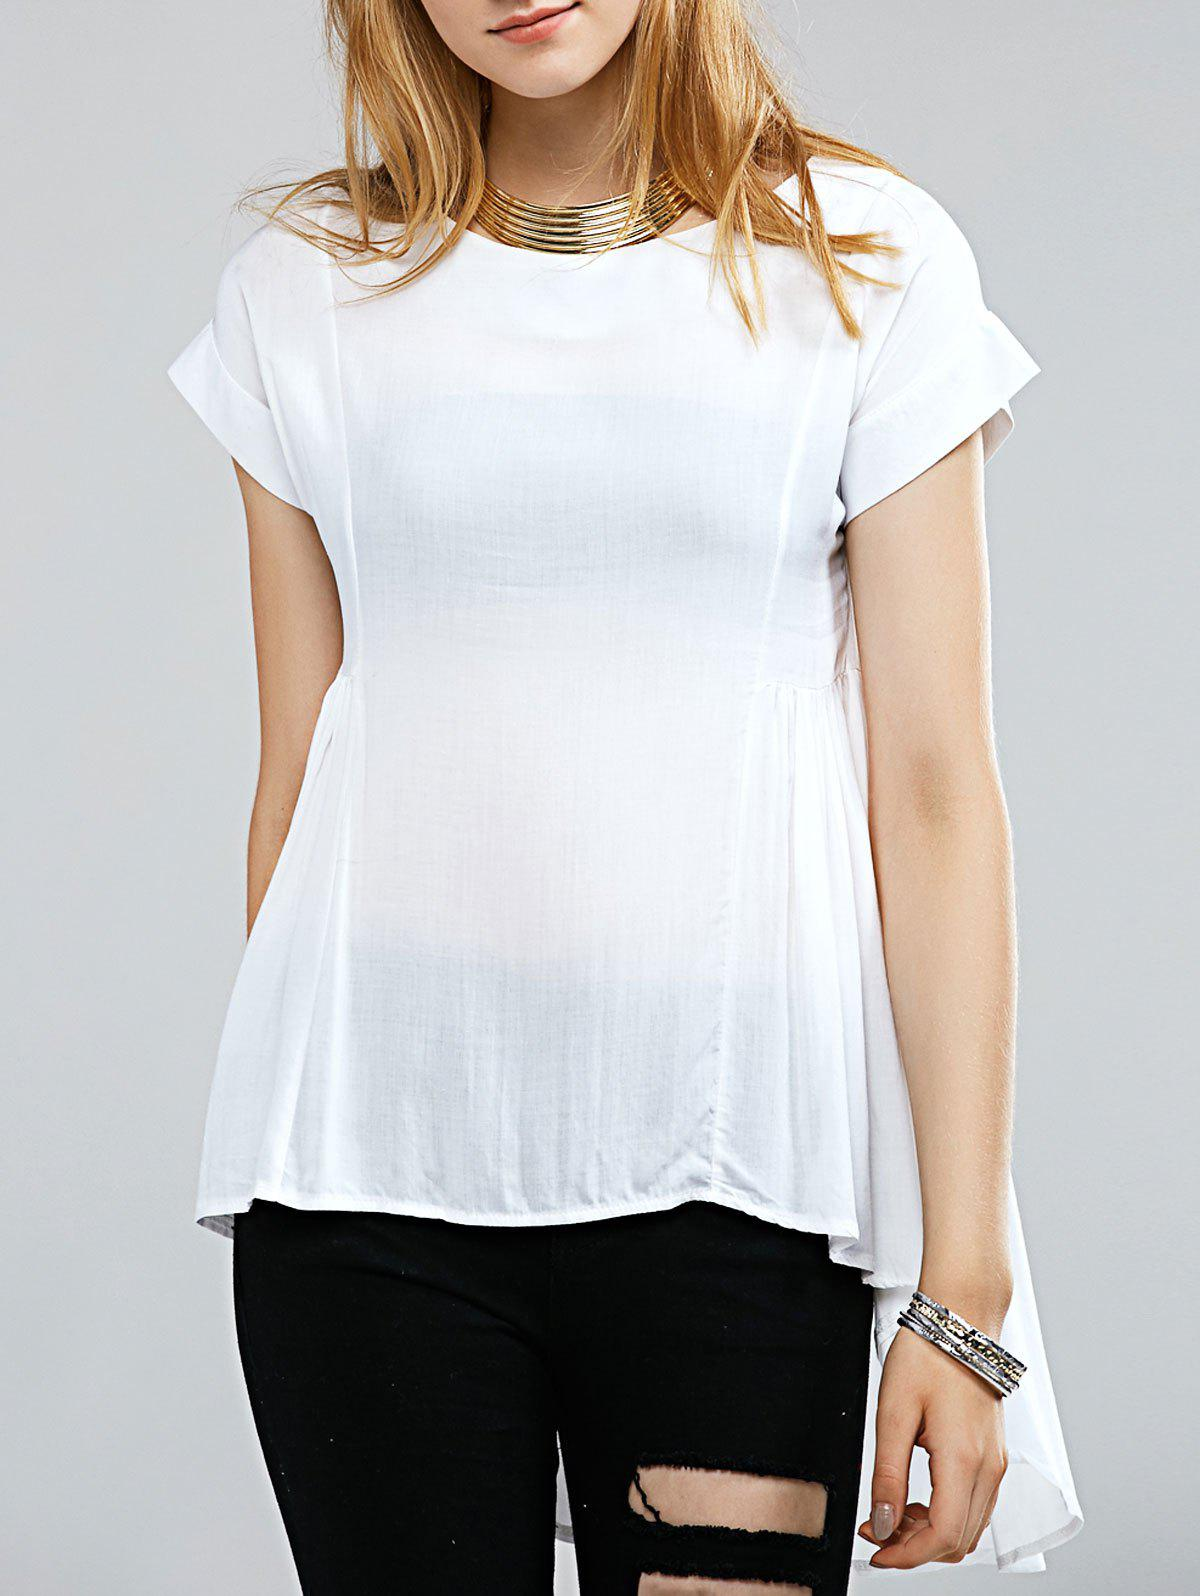 Refreshing See-Through Irregular Blouse For Women - WHITE M